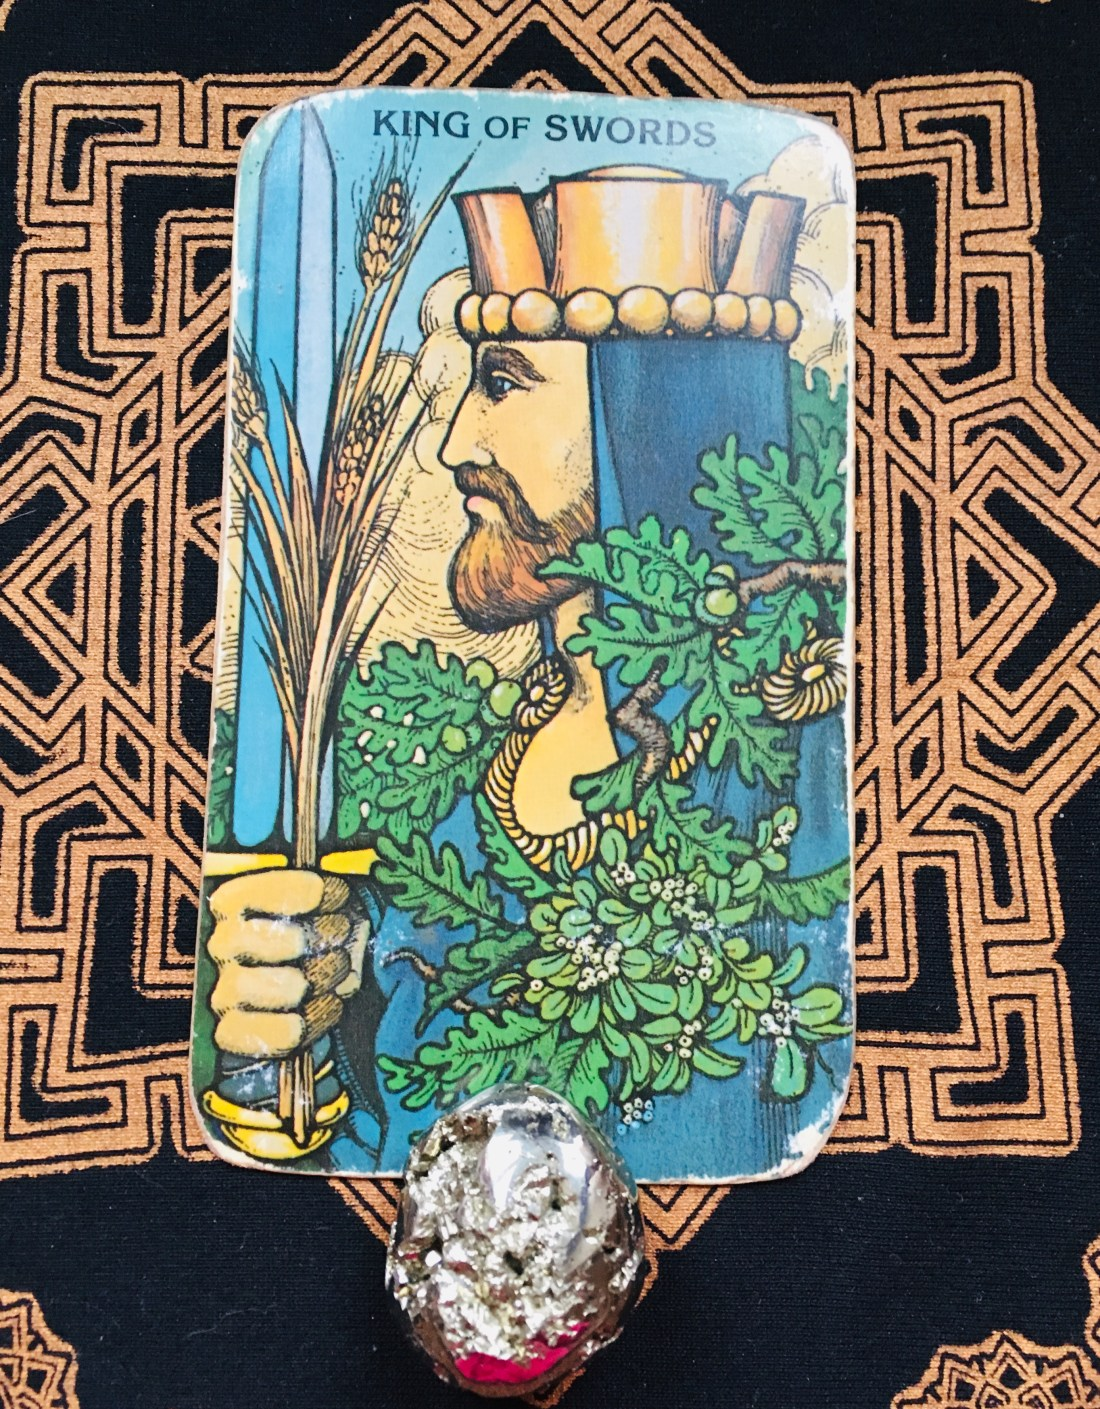 King of Swords and mental wisdom. He holds a sword and represents mental maturity.